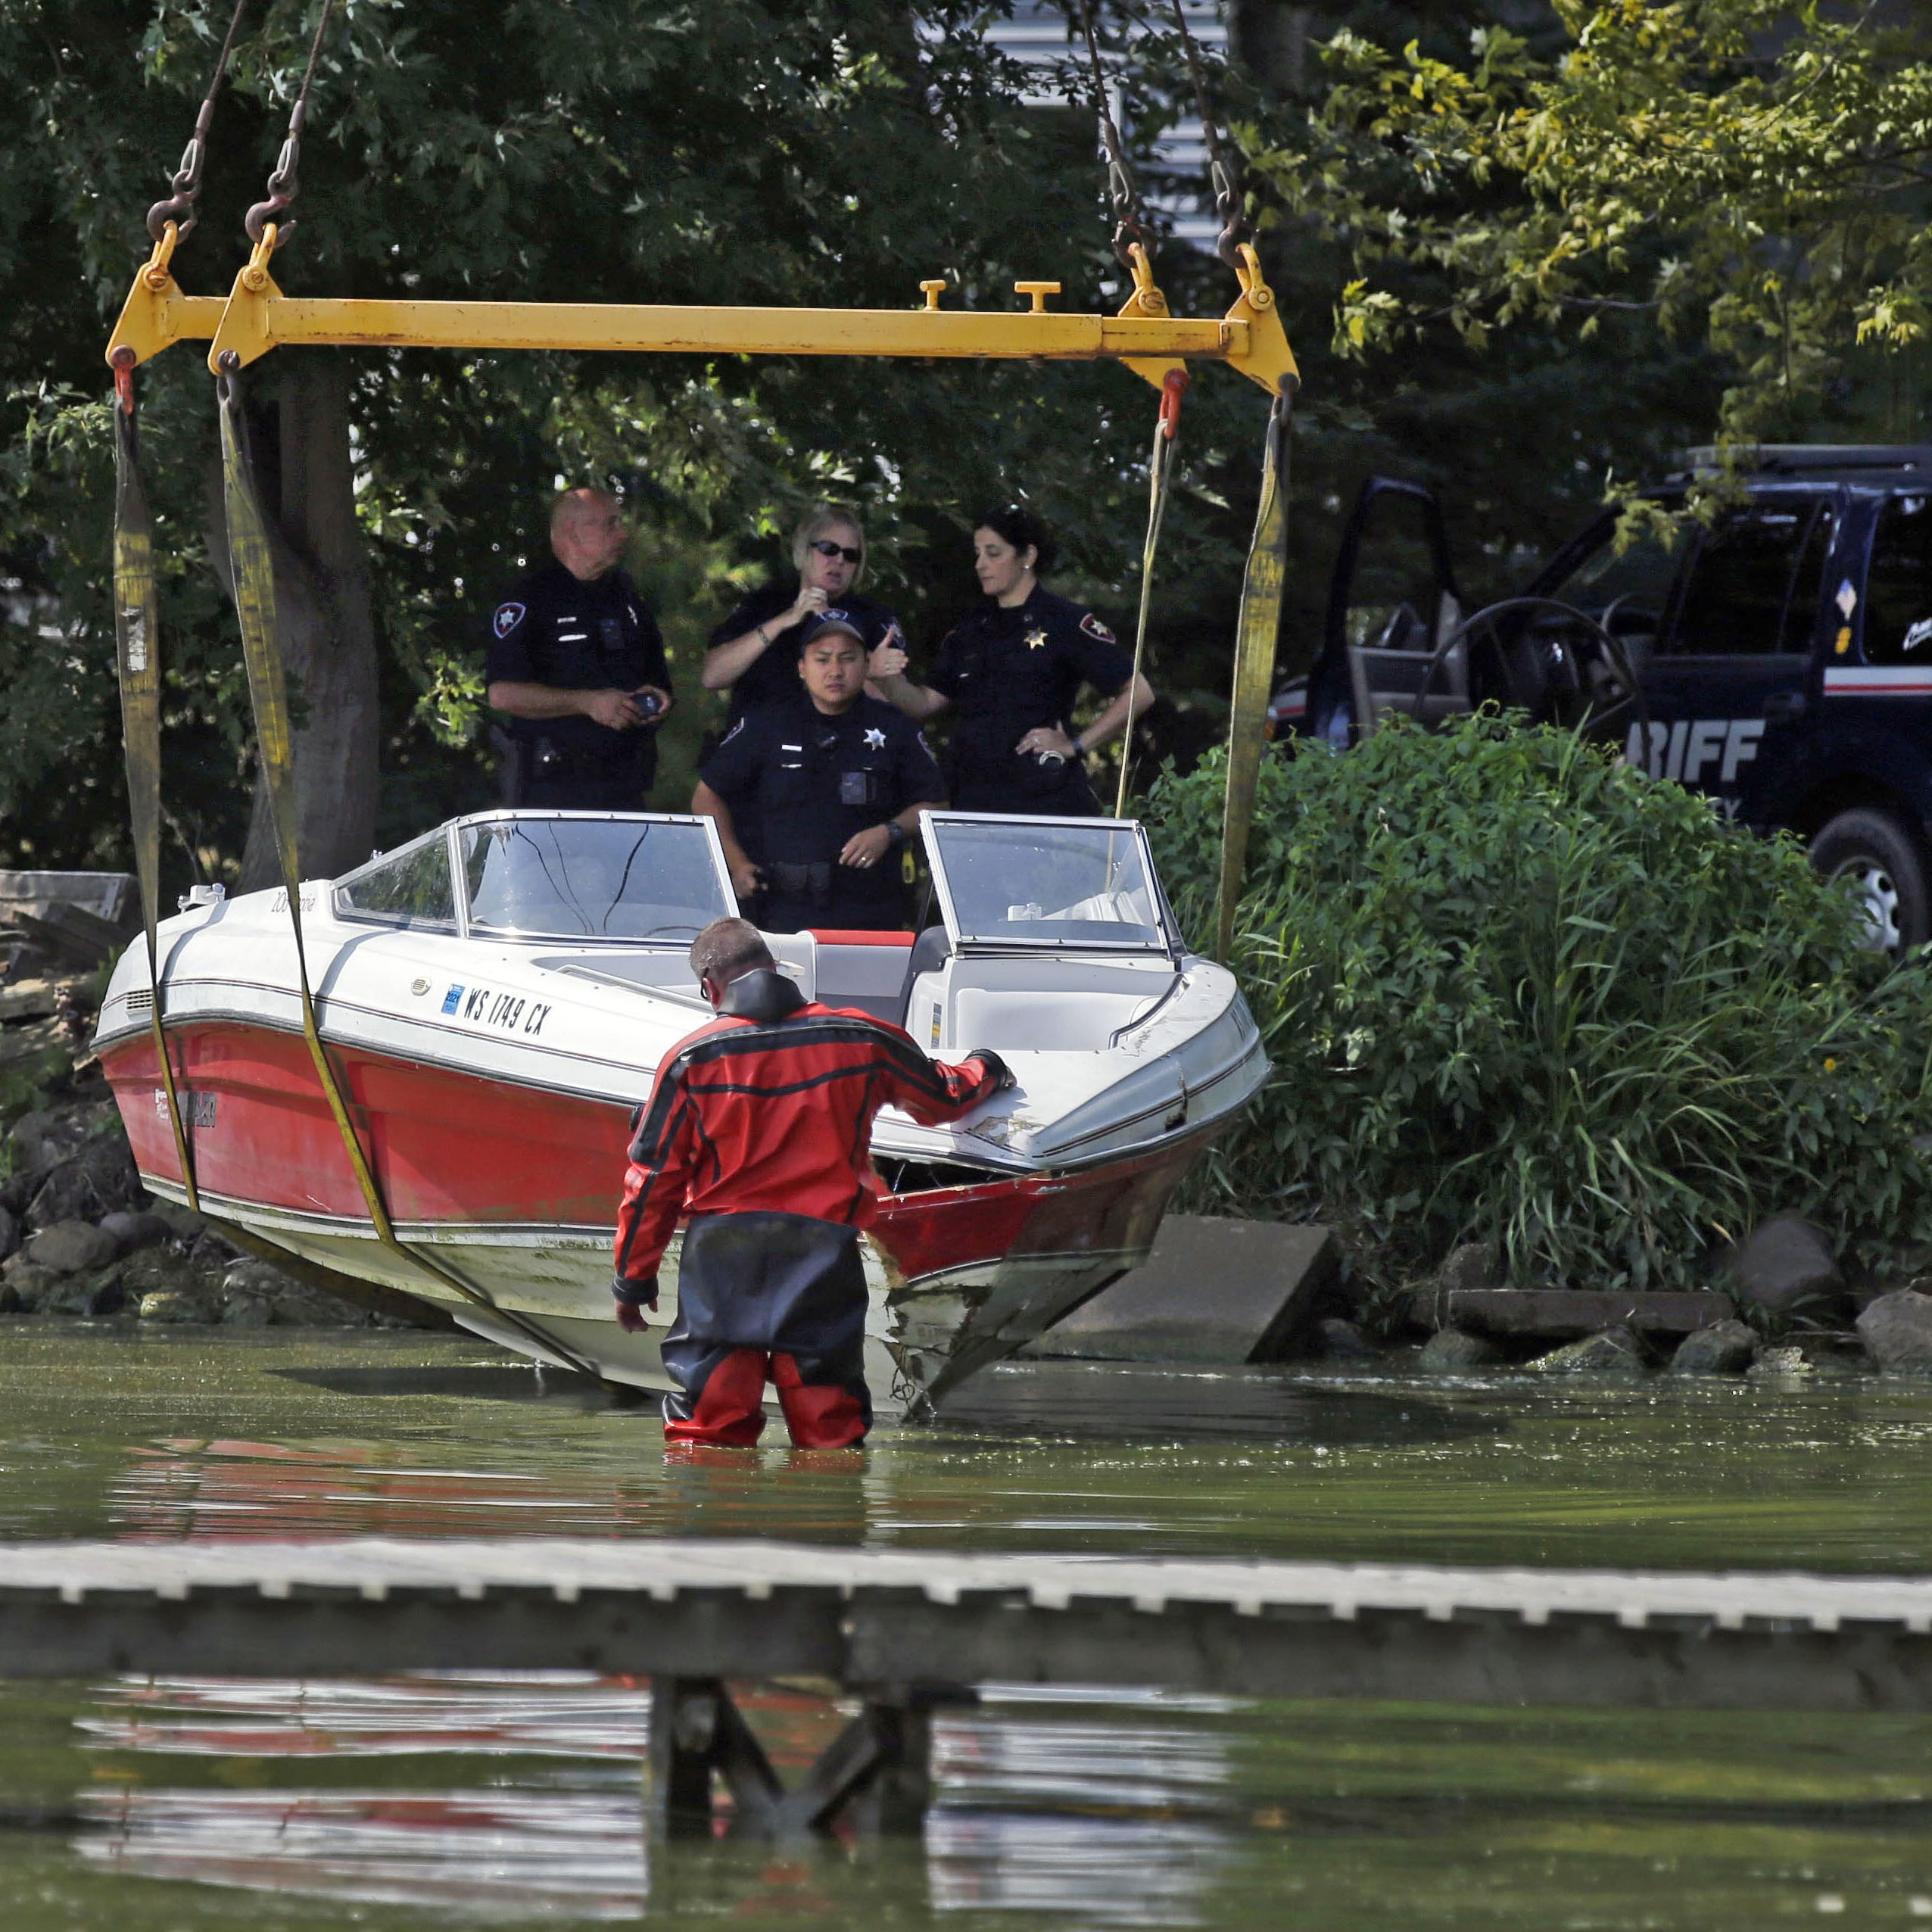 Jason Rippl, a member of the Winnebago County Sheriff's Department Rescue and Recovery Dive Team, inspects a 20-foot Rinker Captiva boat Sunday as it is removed from Lake Winnebago. The boat was damaged in a collision with another boat Saturday.